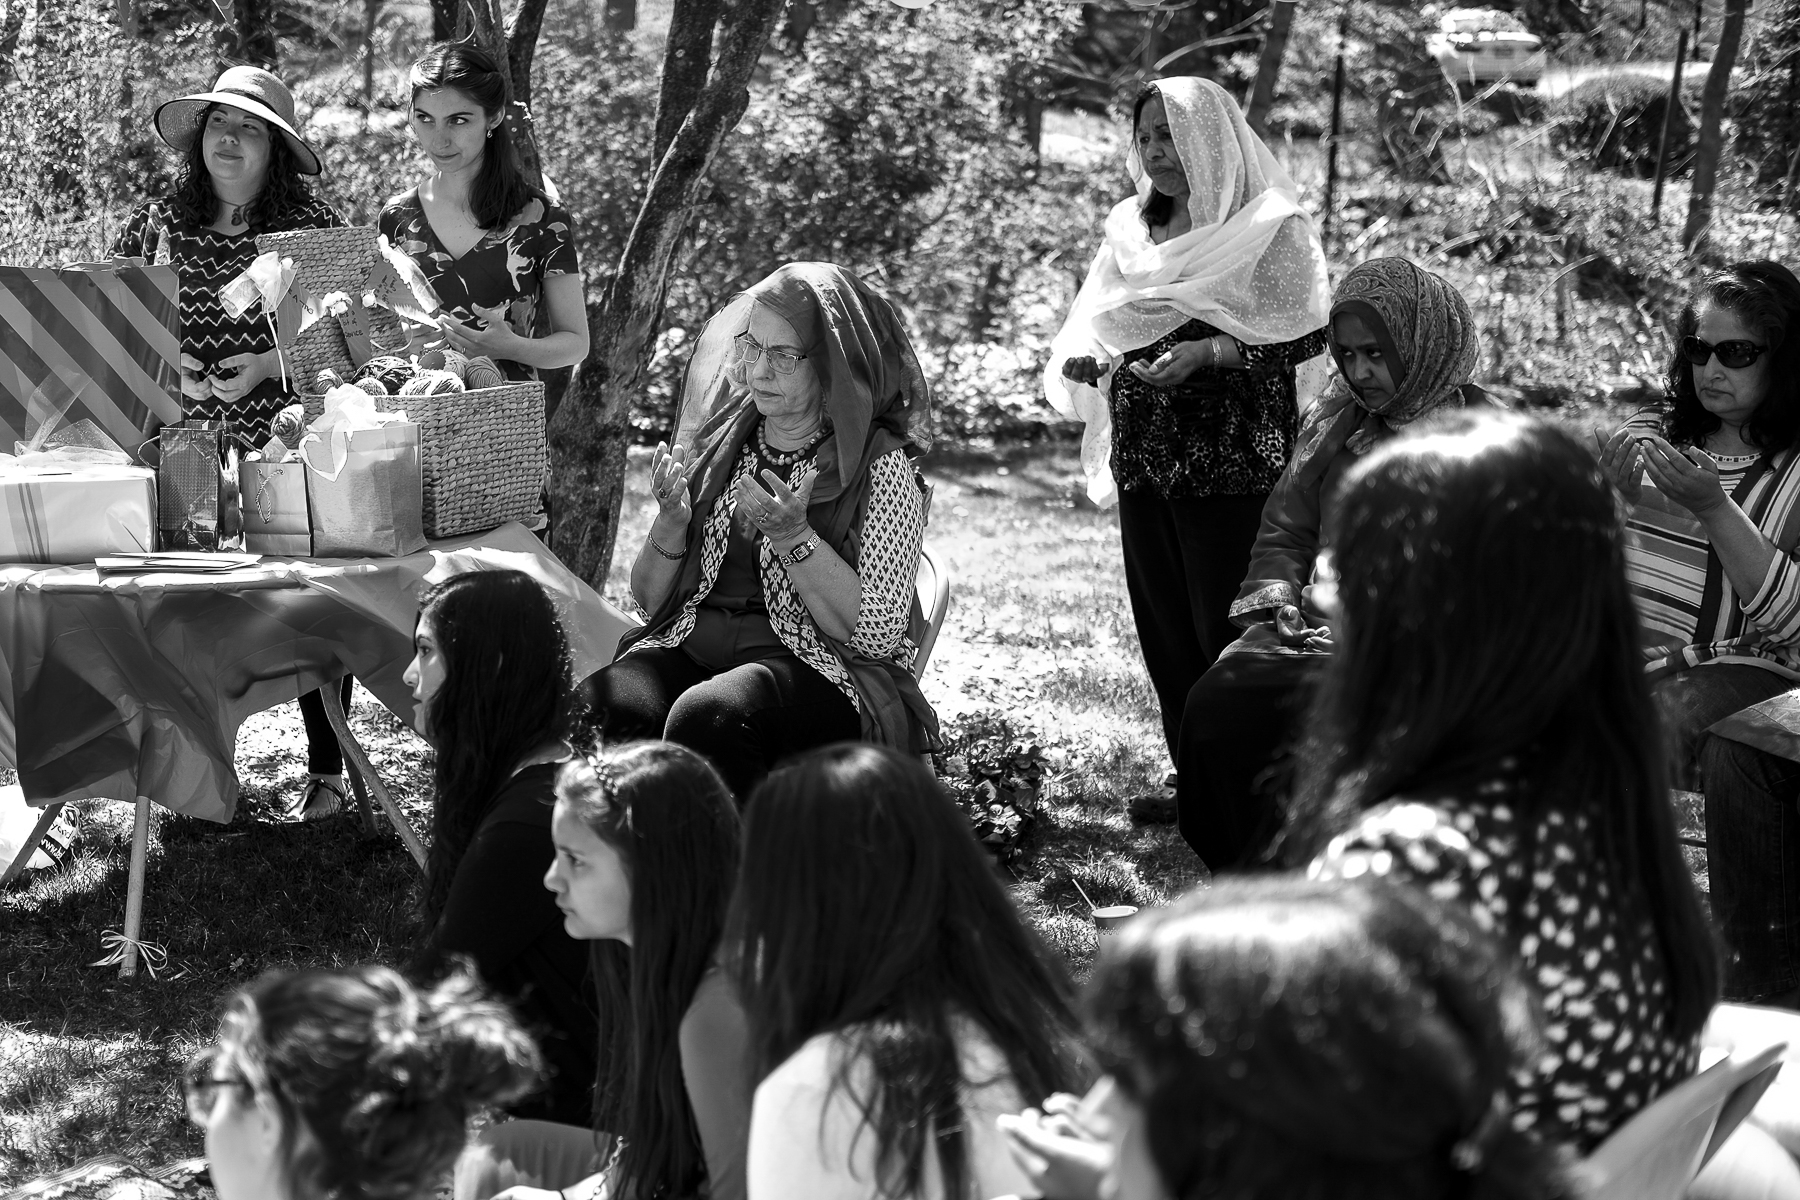 Several generations of Muslim women offer prayers and blessings to the bride. These women and girls come from a multitude of countries and cultures, yet all have come together to celebrate the marriage of Sara Gordon to Jamal Halawa, a Palestinian-American from Boston. The bridal shower was a blend of East and West, young and old.